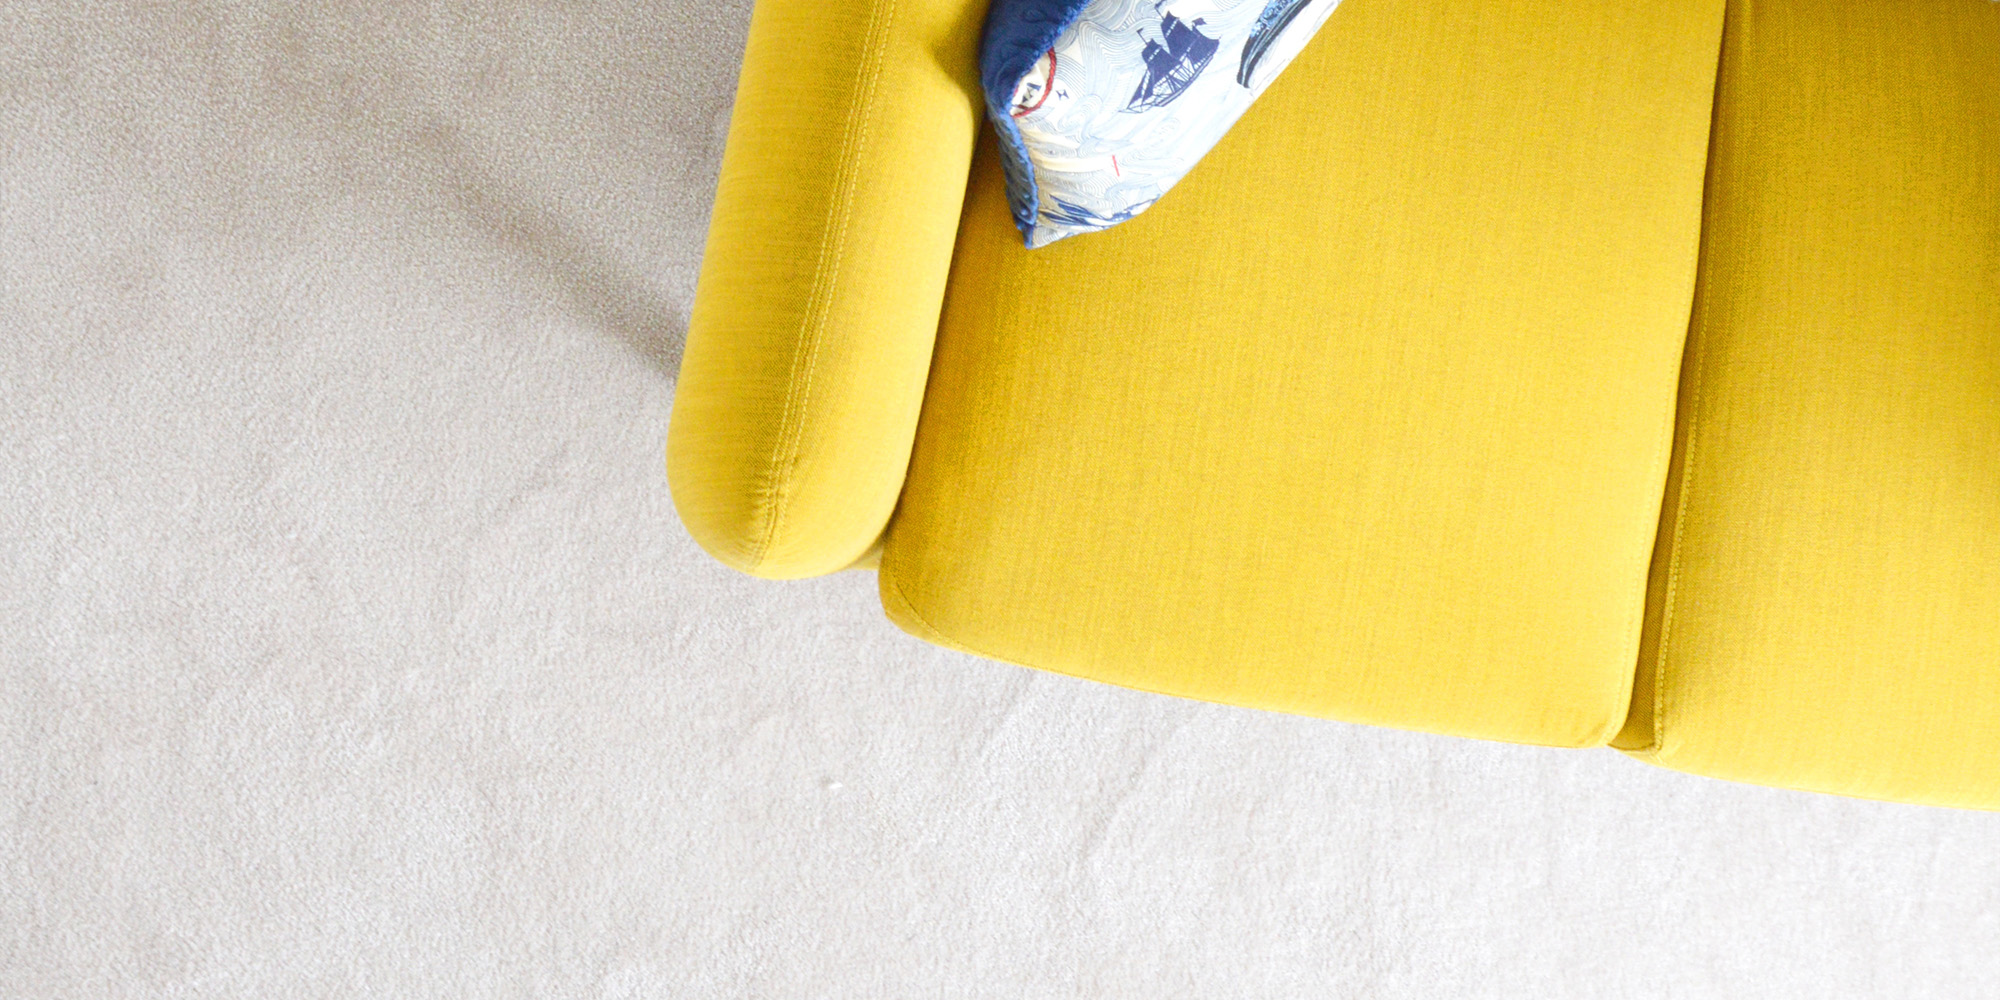 Industry leading professionals, providing Melbourne clients with quality carpet services since 1979.